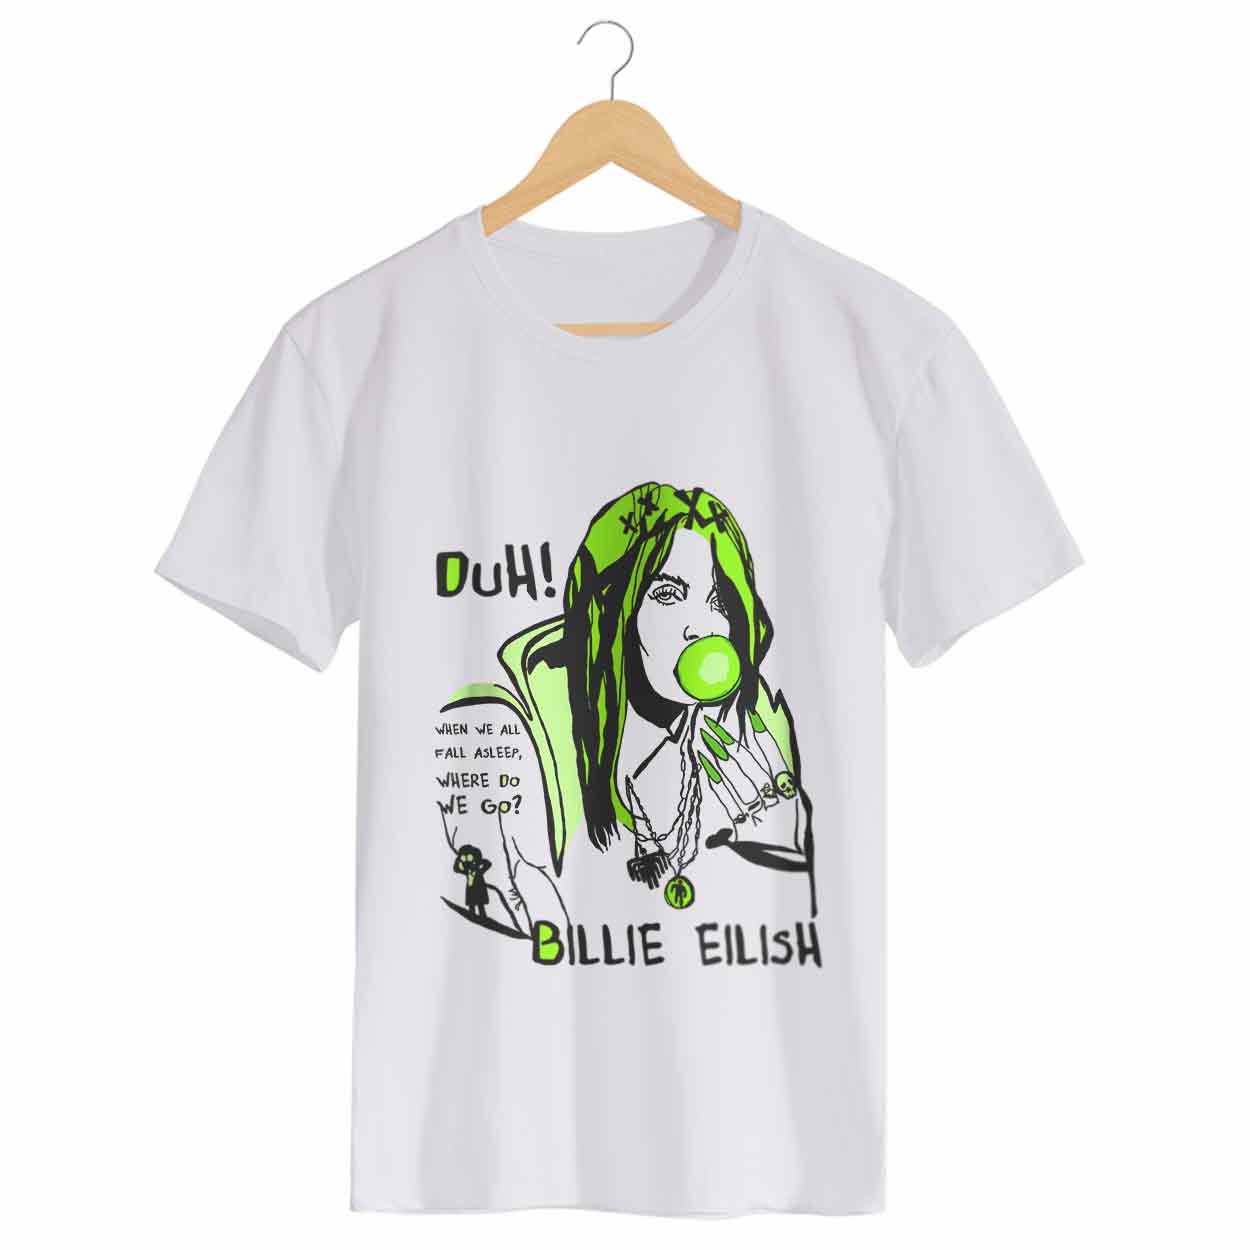 Camiseta When We All Fall Asleep, Where Do We Go? - Billie Eilish - Masculino